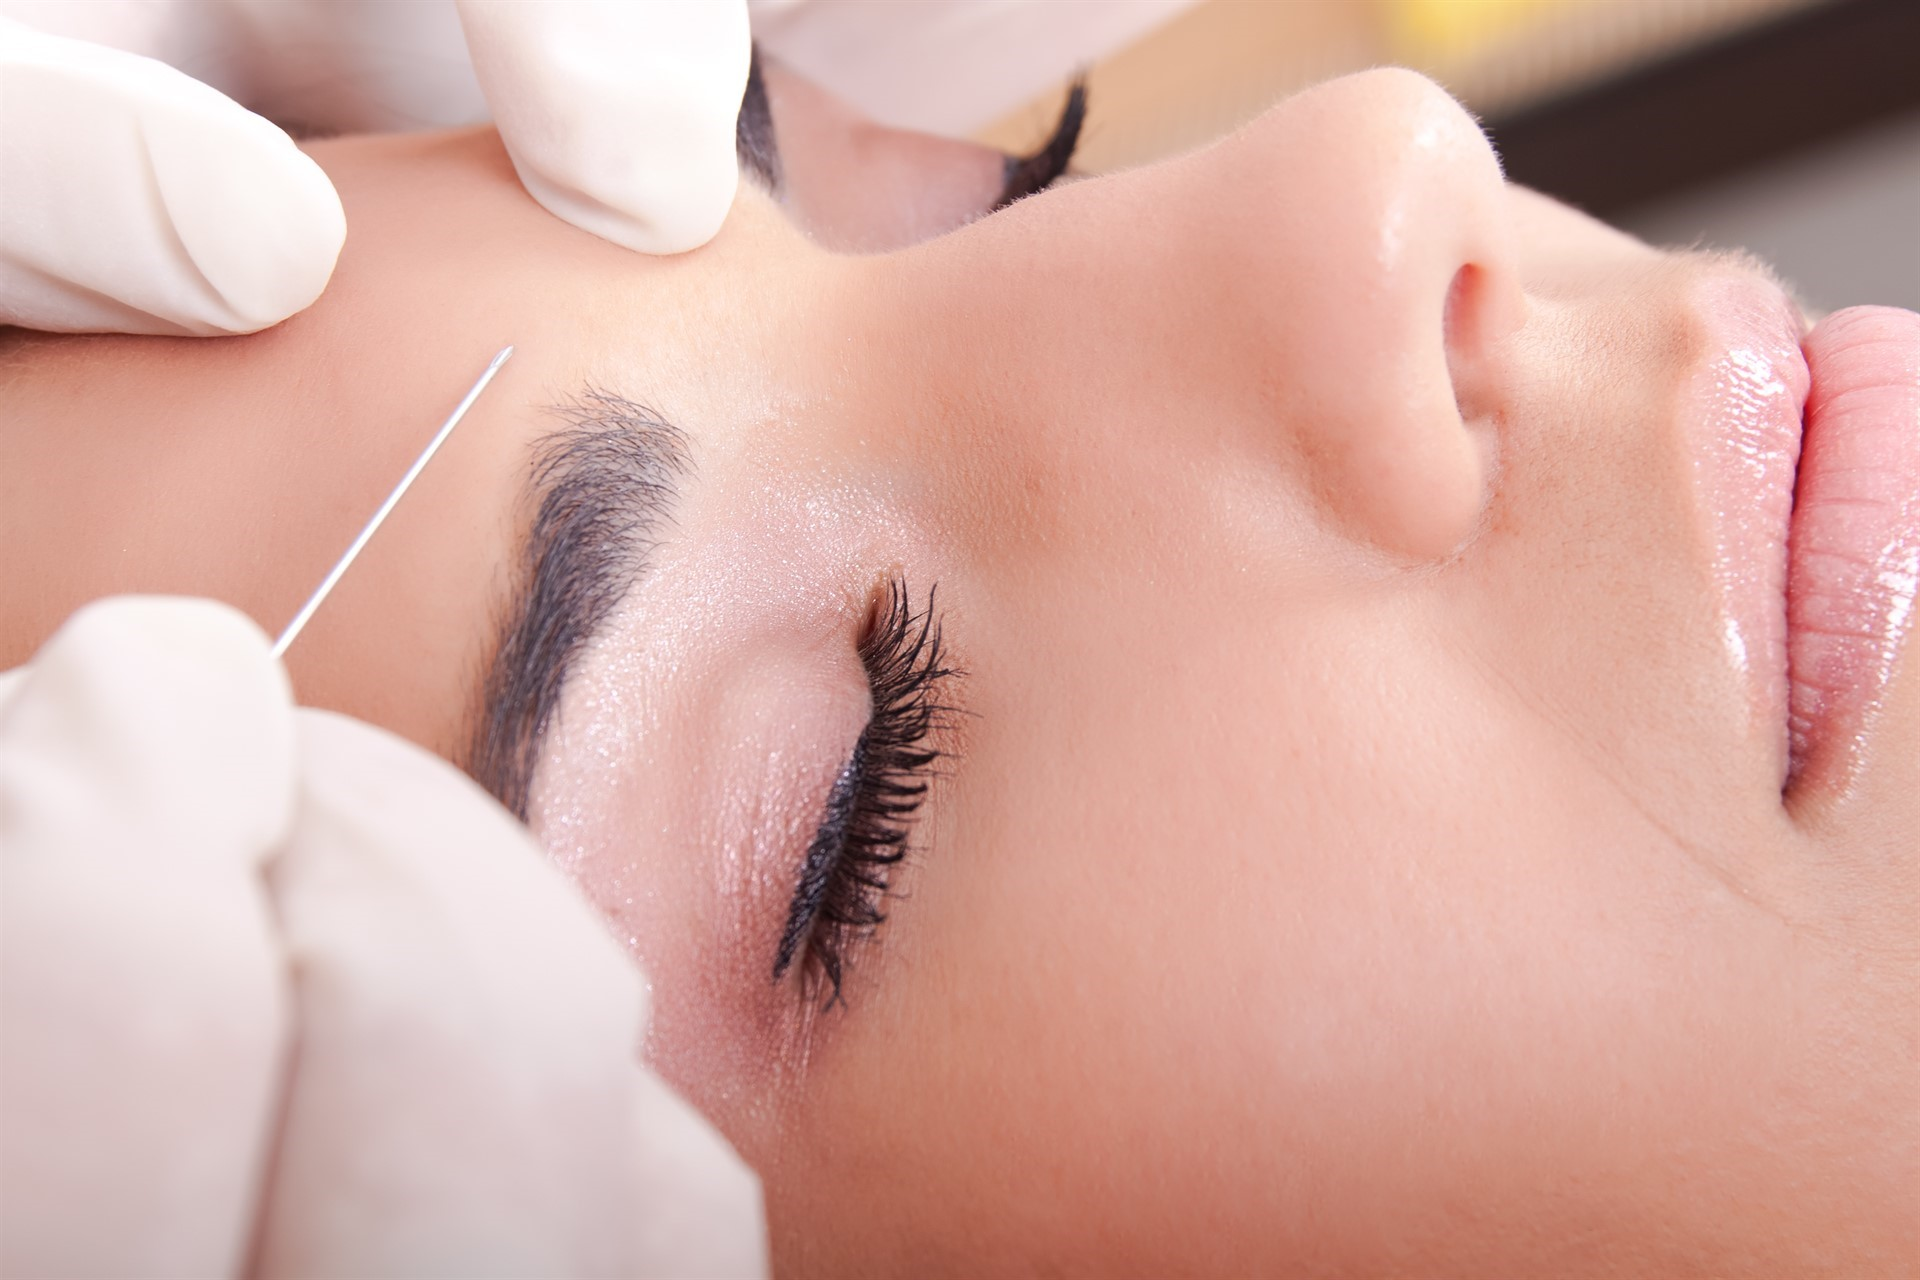 Reducing the appearance of wrinkles with neurotoxins